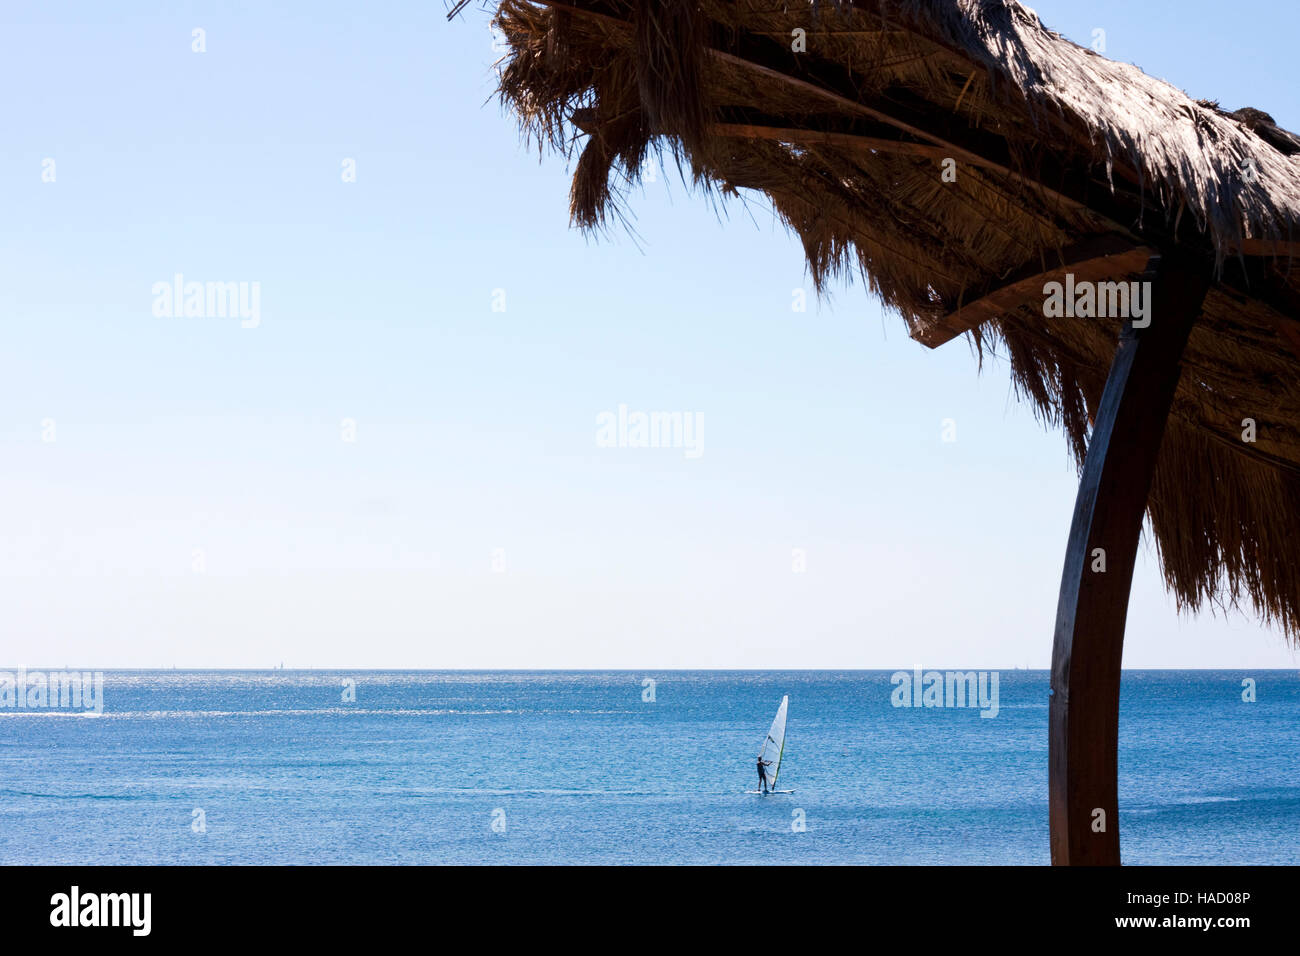 Straw umbrella on beach with wind surfer in the sea - Stock Image